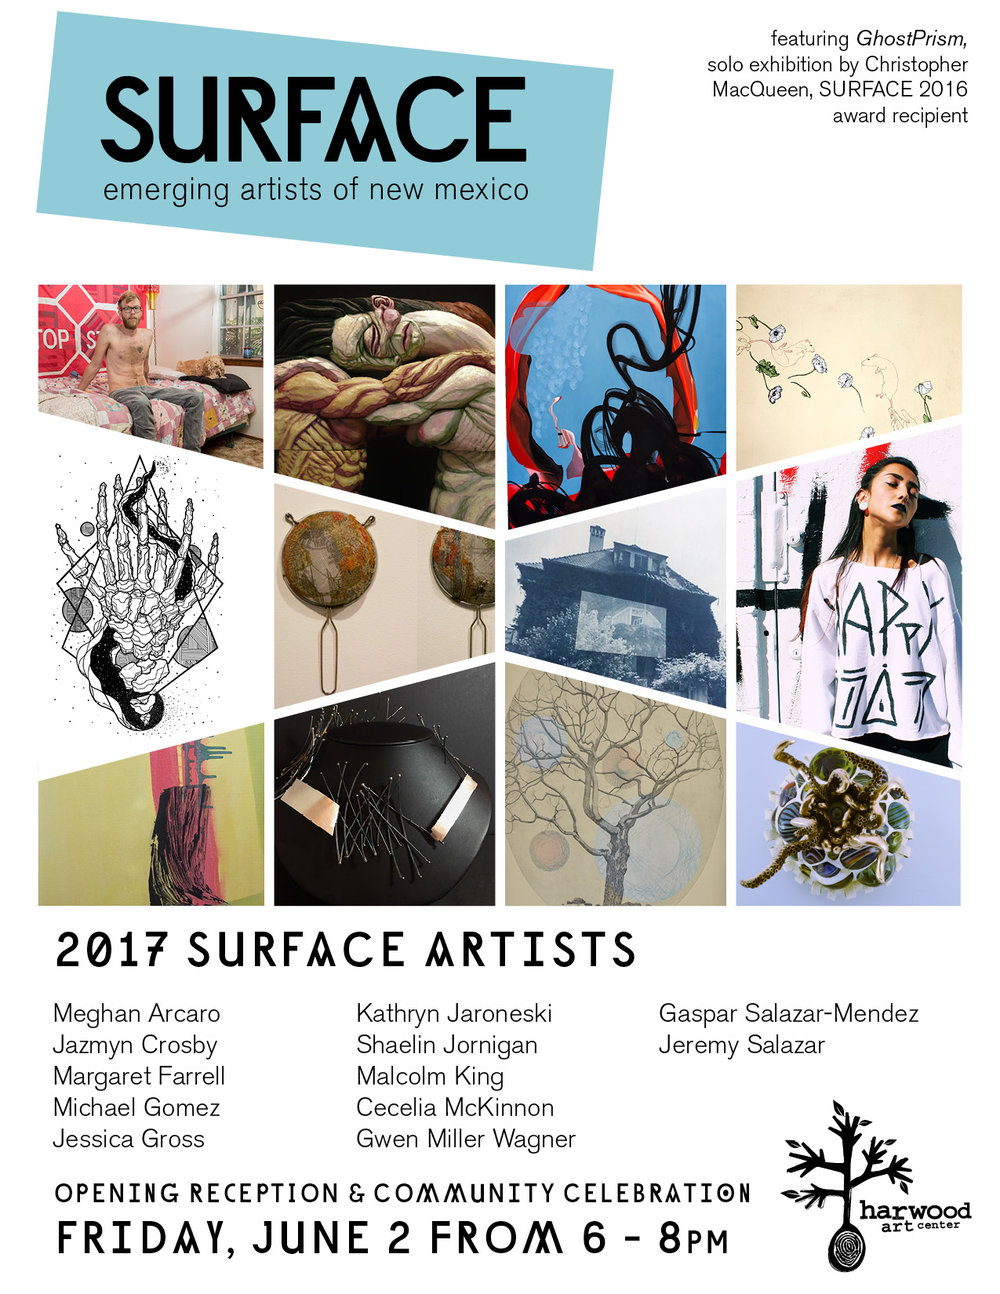 The SURFACE exhibition at the Harwood Art Center is an annual juried show. The how will be on exhibit till July 21st at 1114 7th St. NW, Albuquerque, NM 87102. Here's a link to an article about the show in the Alibi, a local news and events publication: http://alibi.com/art/53529/Surface-Currents.html